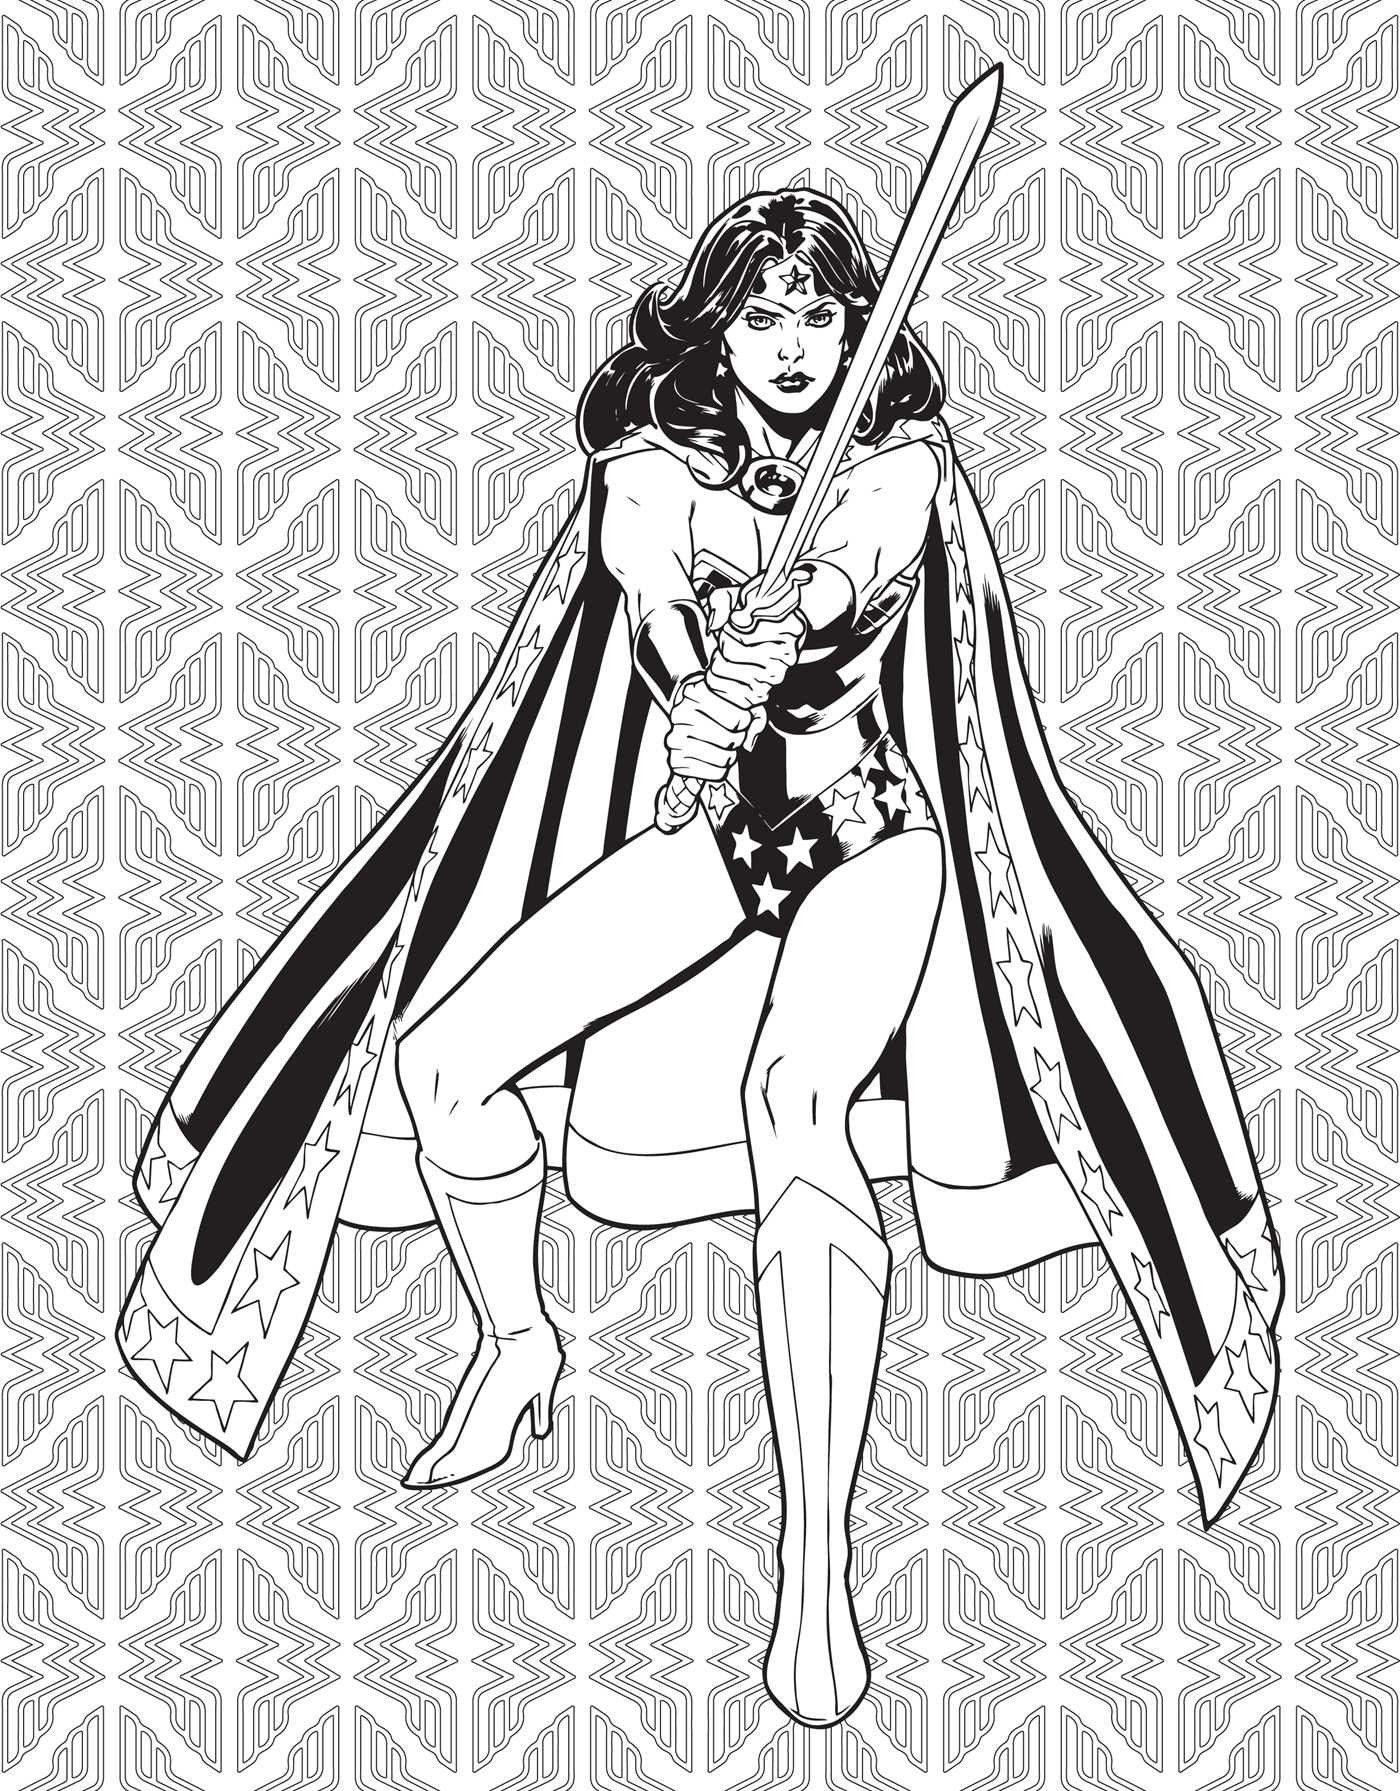 dc comics wonder woman coloring book book by insight editions